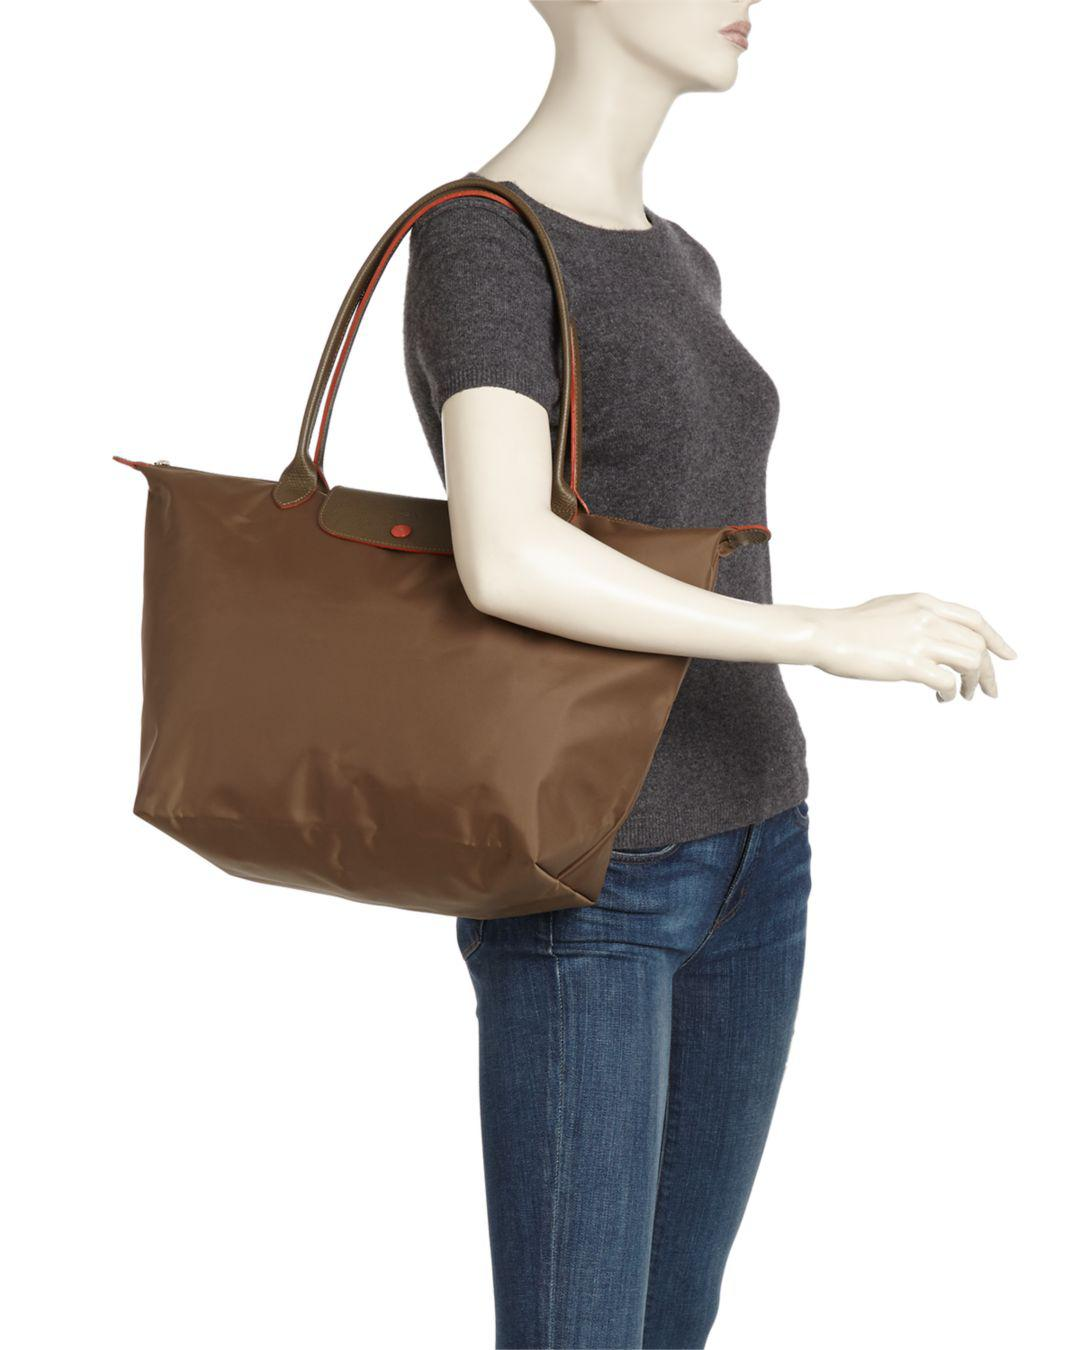 6c956a5bbf45 Lyst - Longchamp Le Pliage Club Large Nylon Shoulder Tote Bag